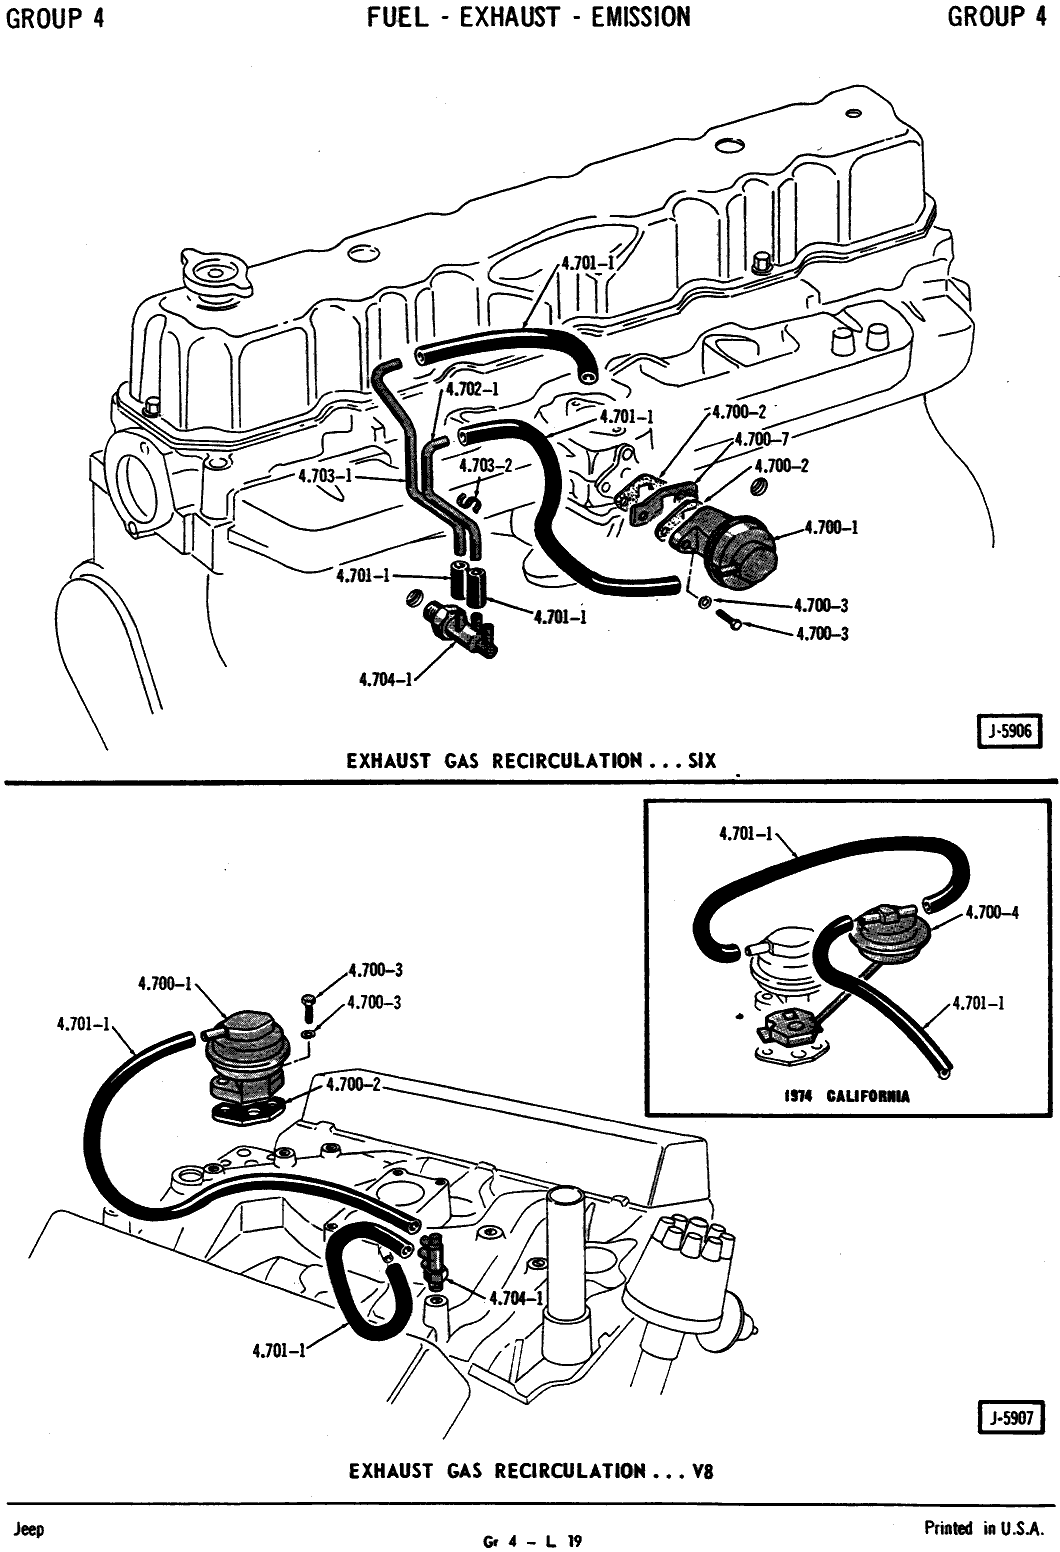 P 0900c1528006ca63 in addition B5200 Kubota Tractor Engine Diagram together with Pac 305 Processor Wiring Diagram besides 2001 2 5l Mazda Millenia Engine Diagram as well Citroen. on 1982 corvette engine manual diagram